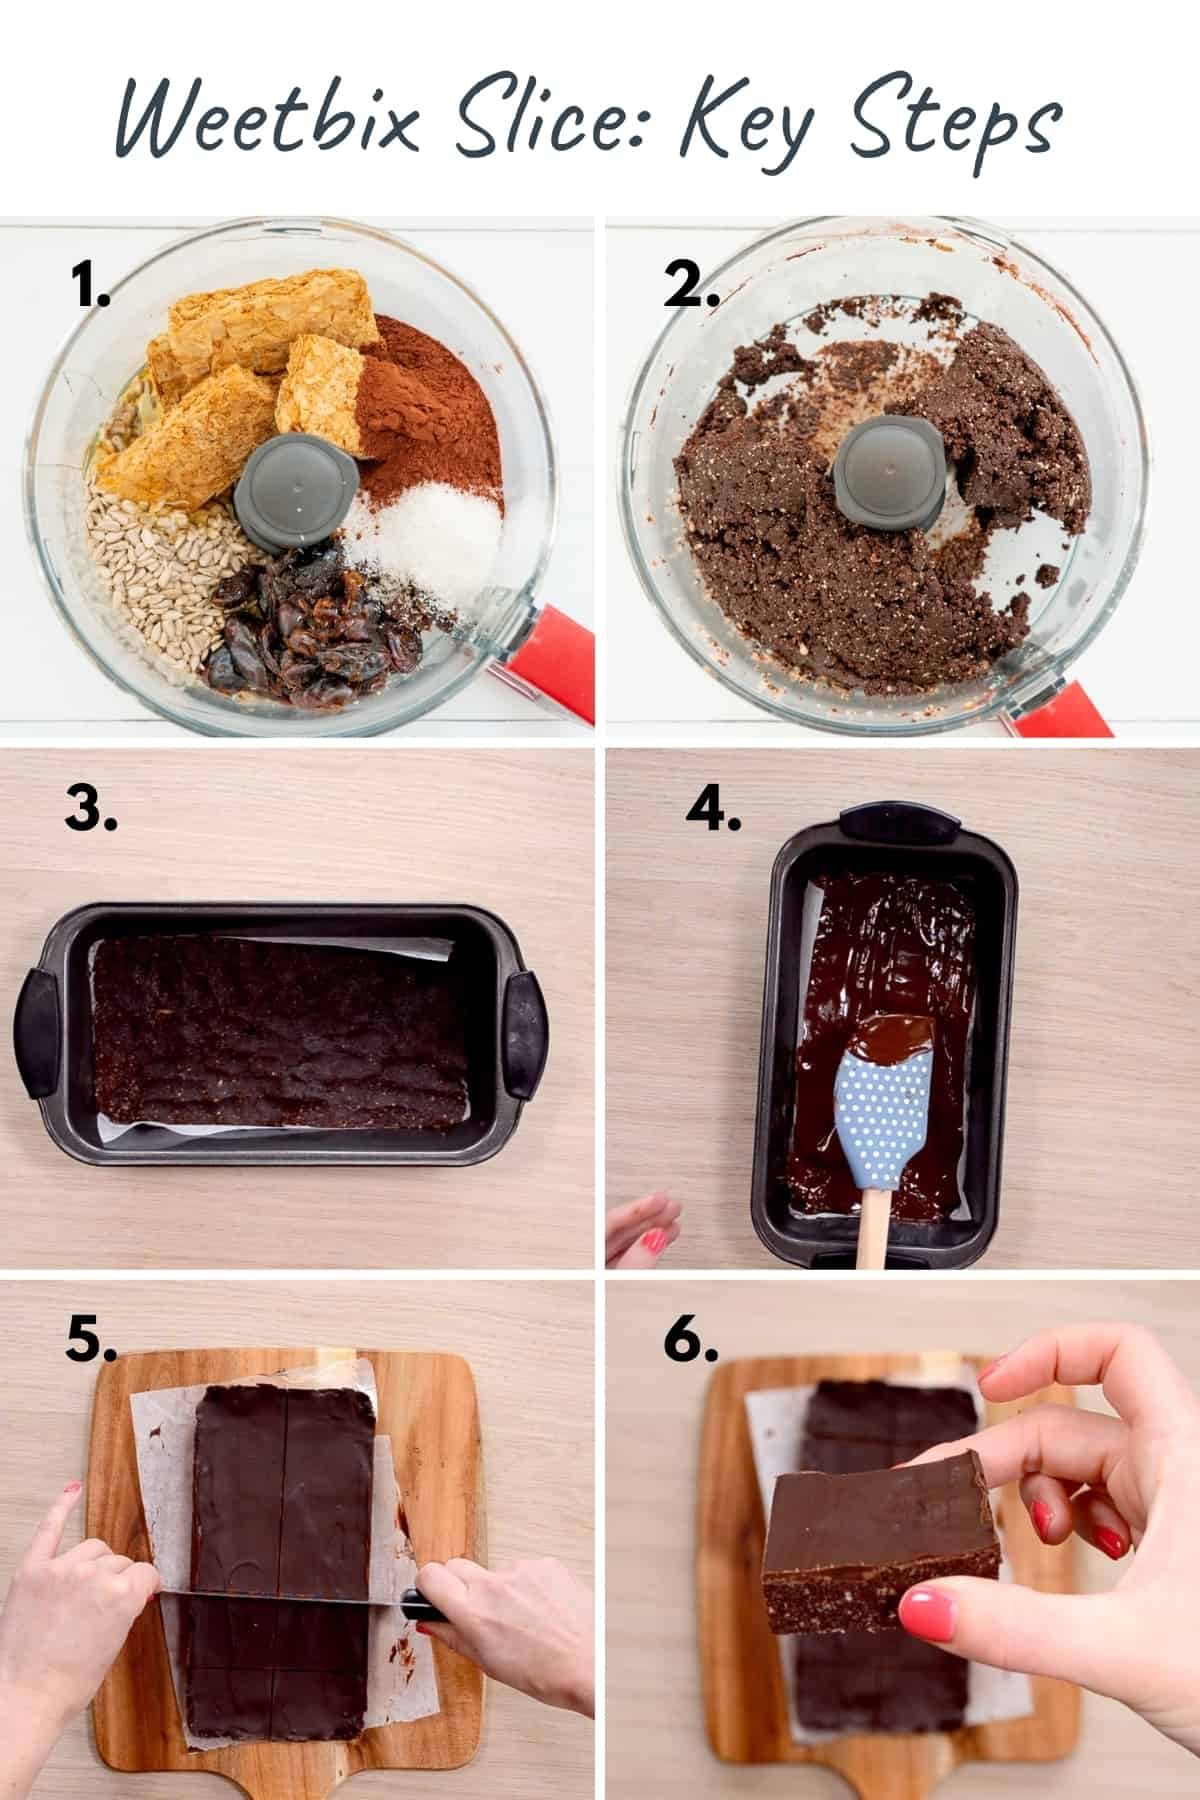 Six photo collage showing the key steps to making no-bake Weetbix slice.